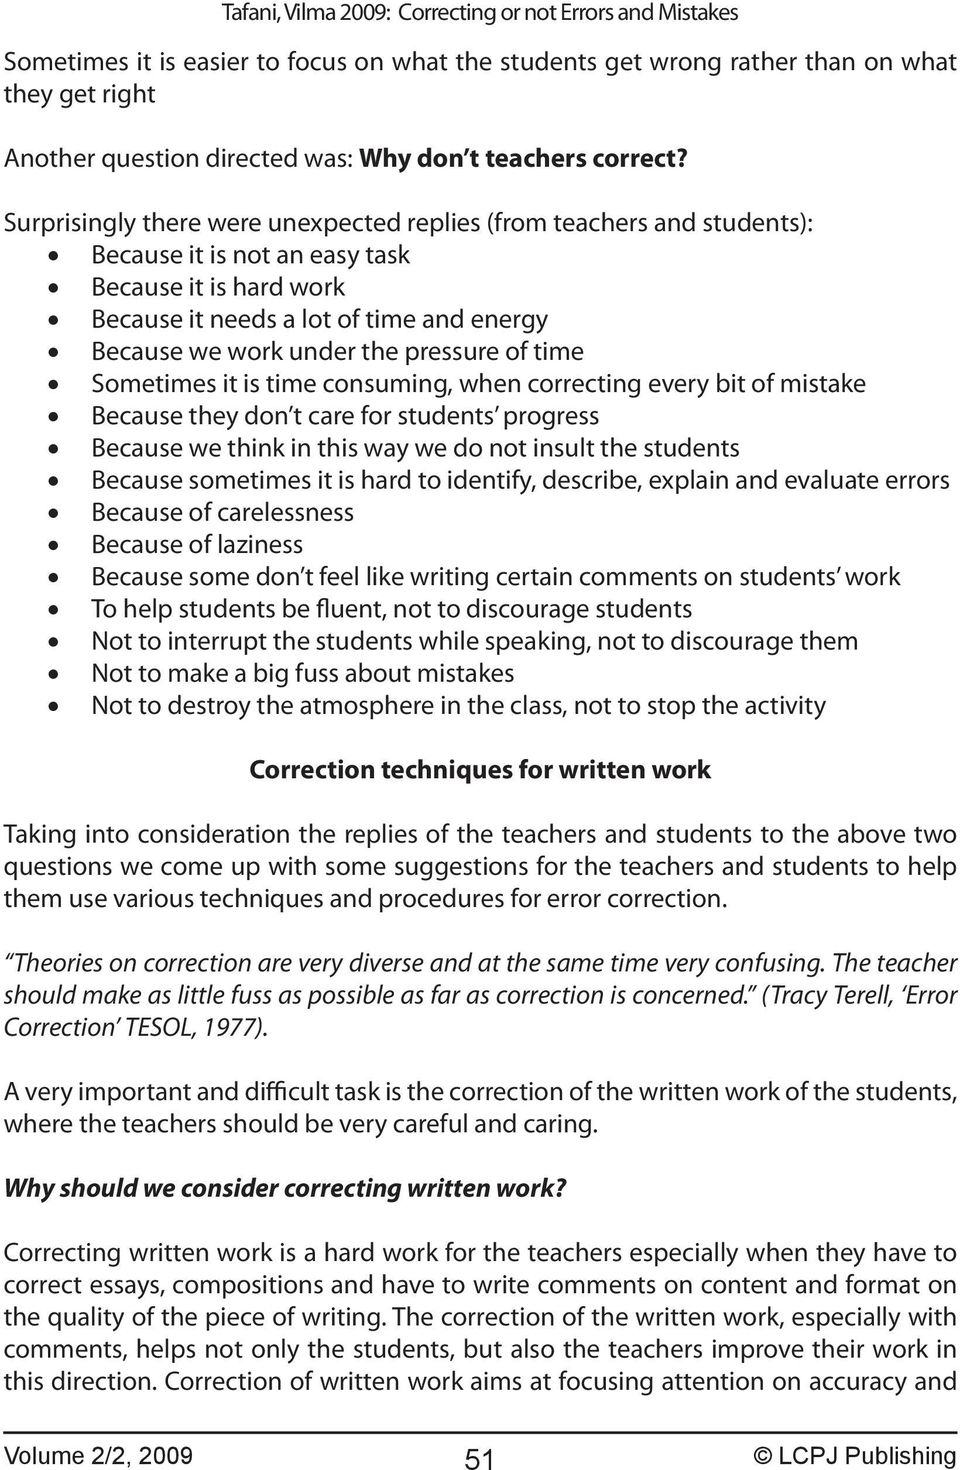 College Essay Title Pressure Of Time Sometimes It Is Time Consuming When Correcting Every Bit  Of Mistake Because Random Act Of Kindness Essay also Life Of Pi Essays Correcting Or Not Errors And Mistakes  Pdf Narrative Essay Topics For High School Students